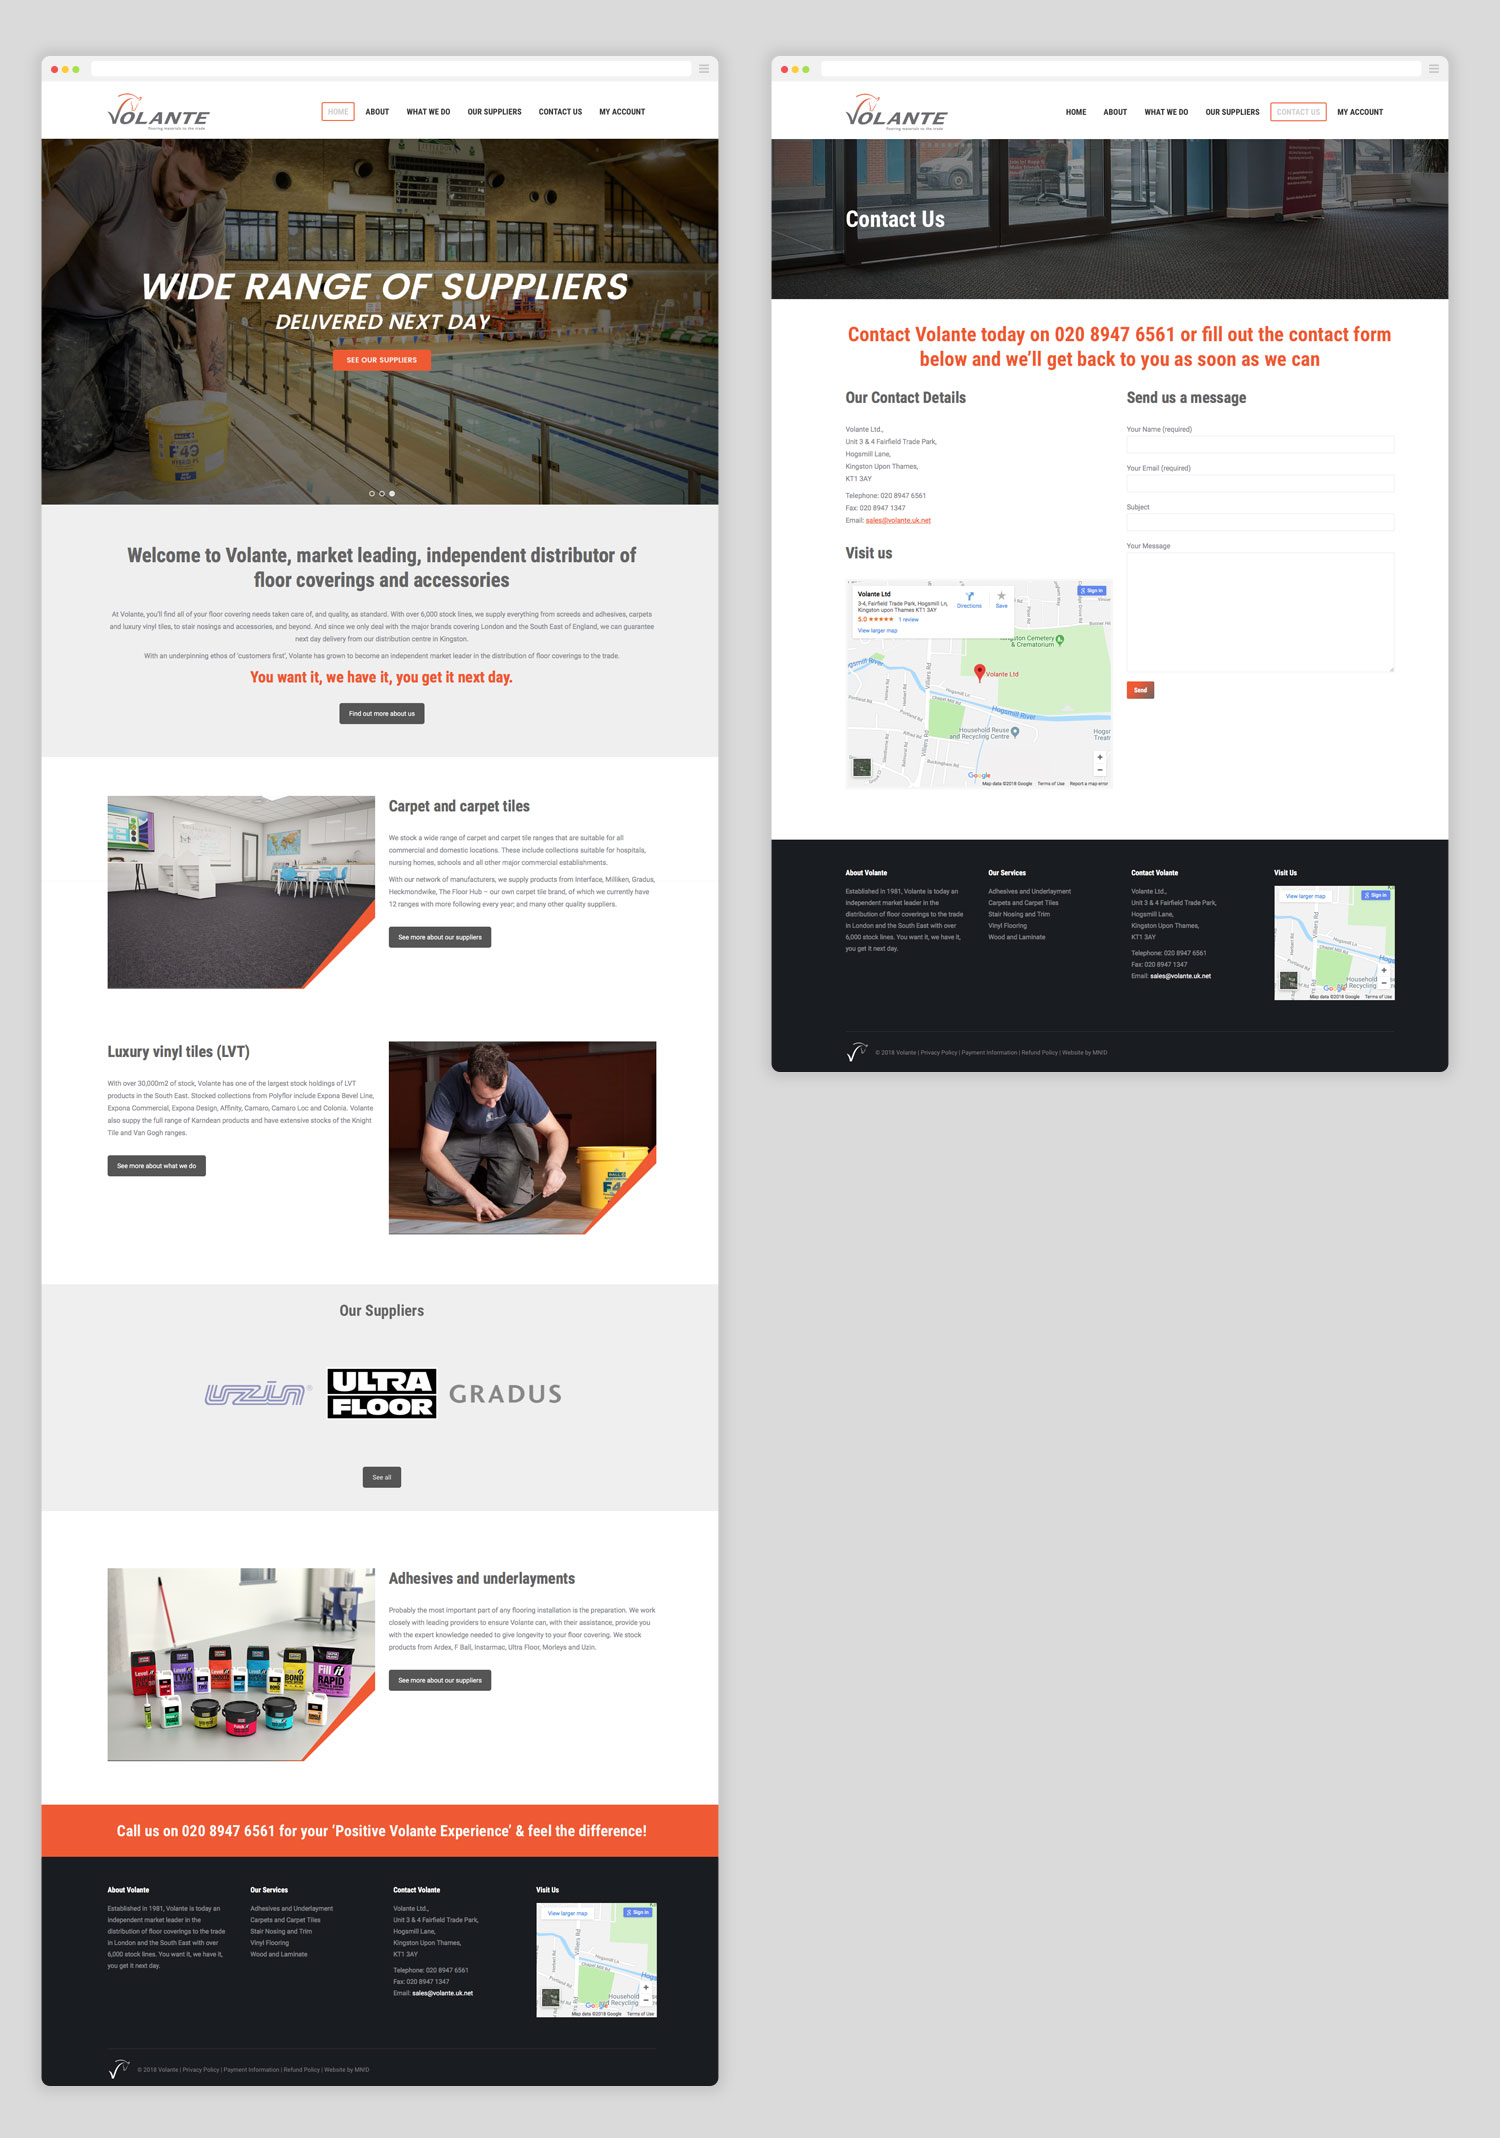 Full page examples of the Volante website